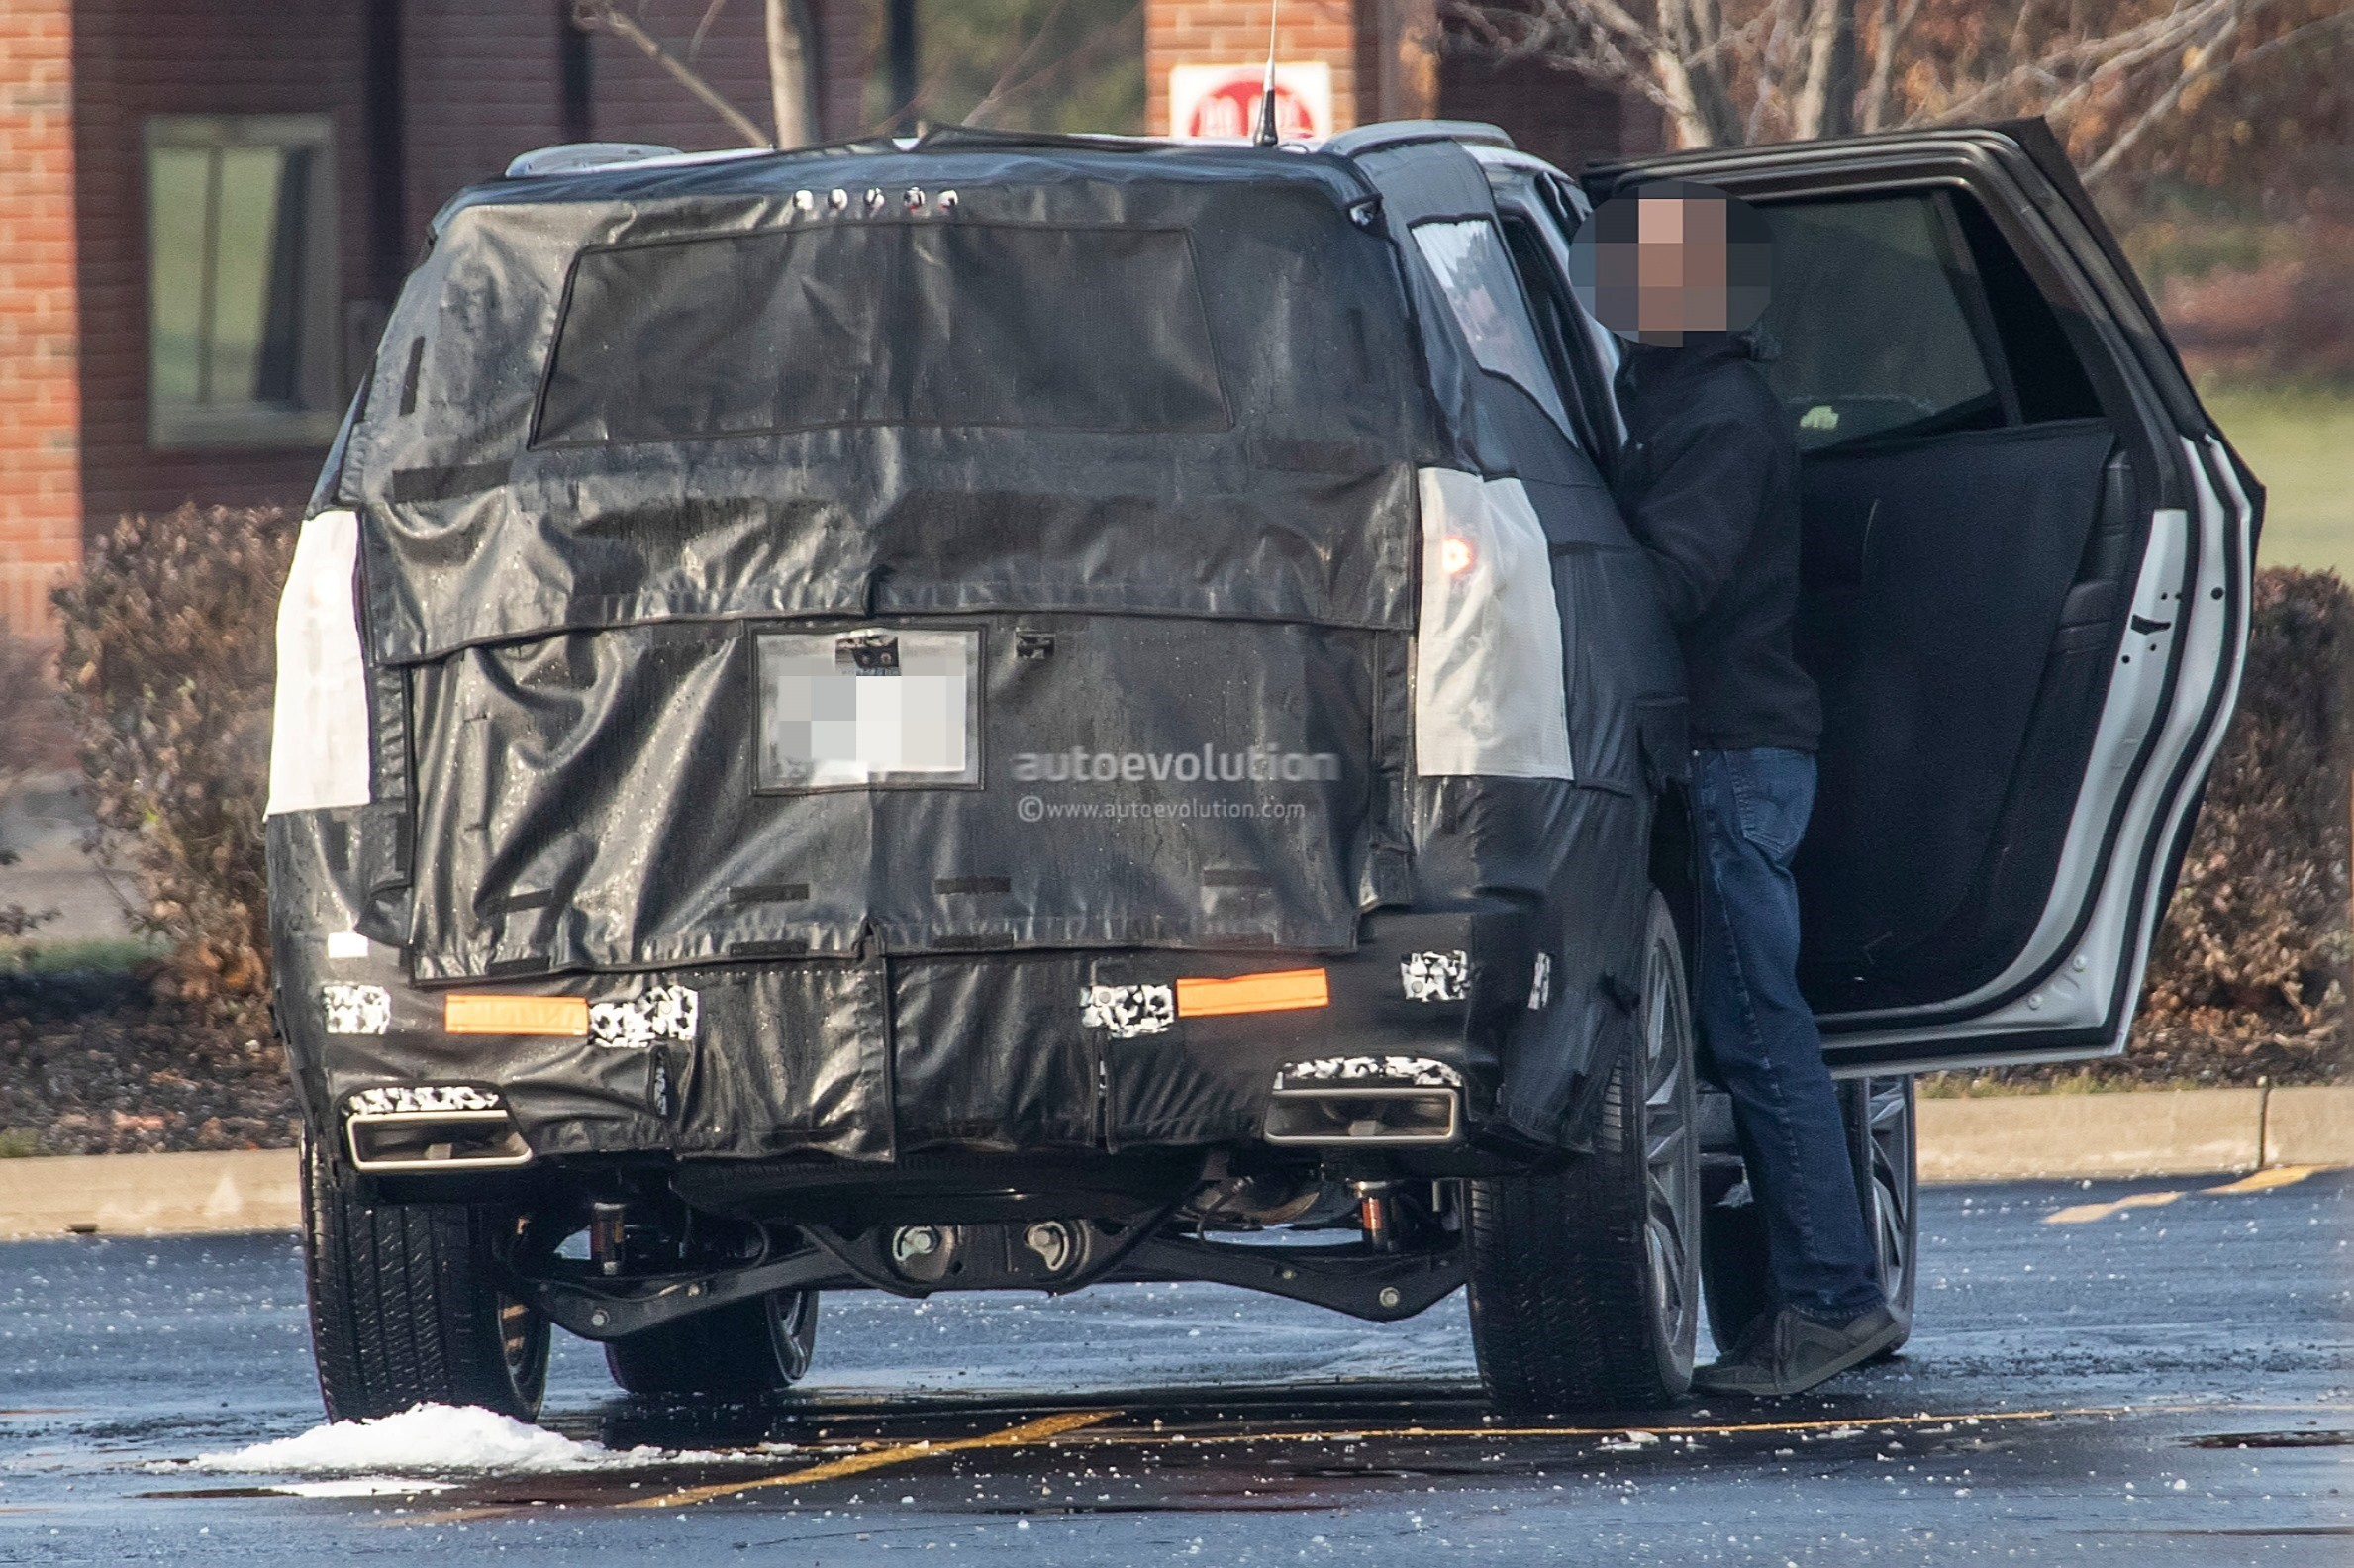 202 - [Cadillac] Escalade V 2020-cadillac-escalade-spied-with-makeshift-dodge-ram-crosshair-grille_17